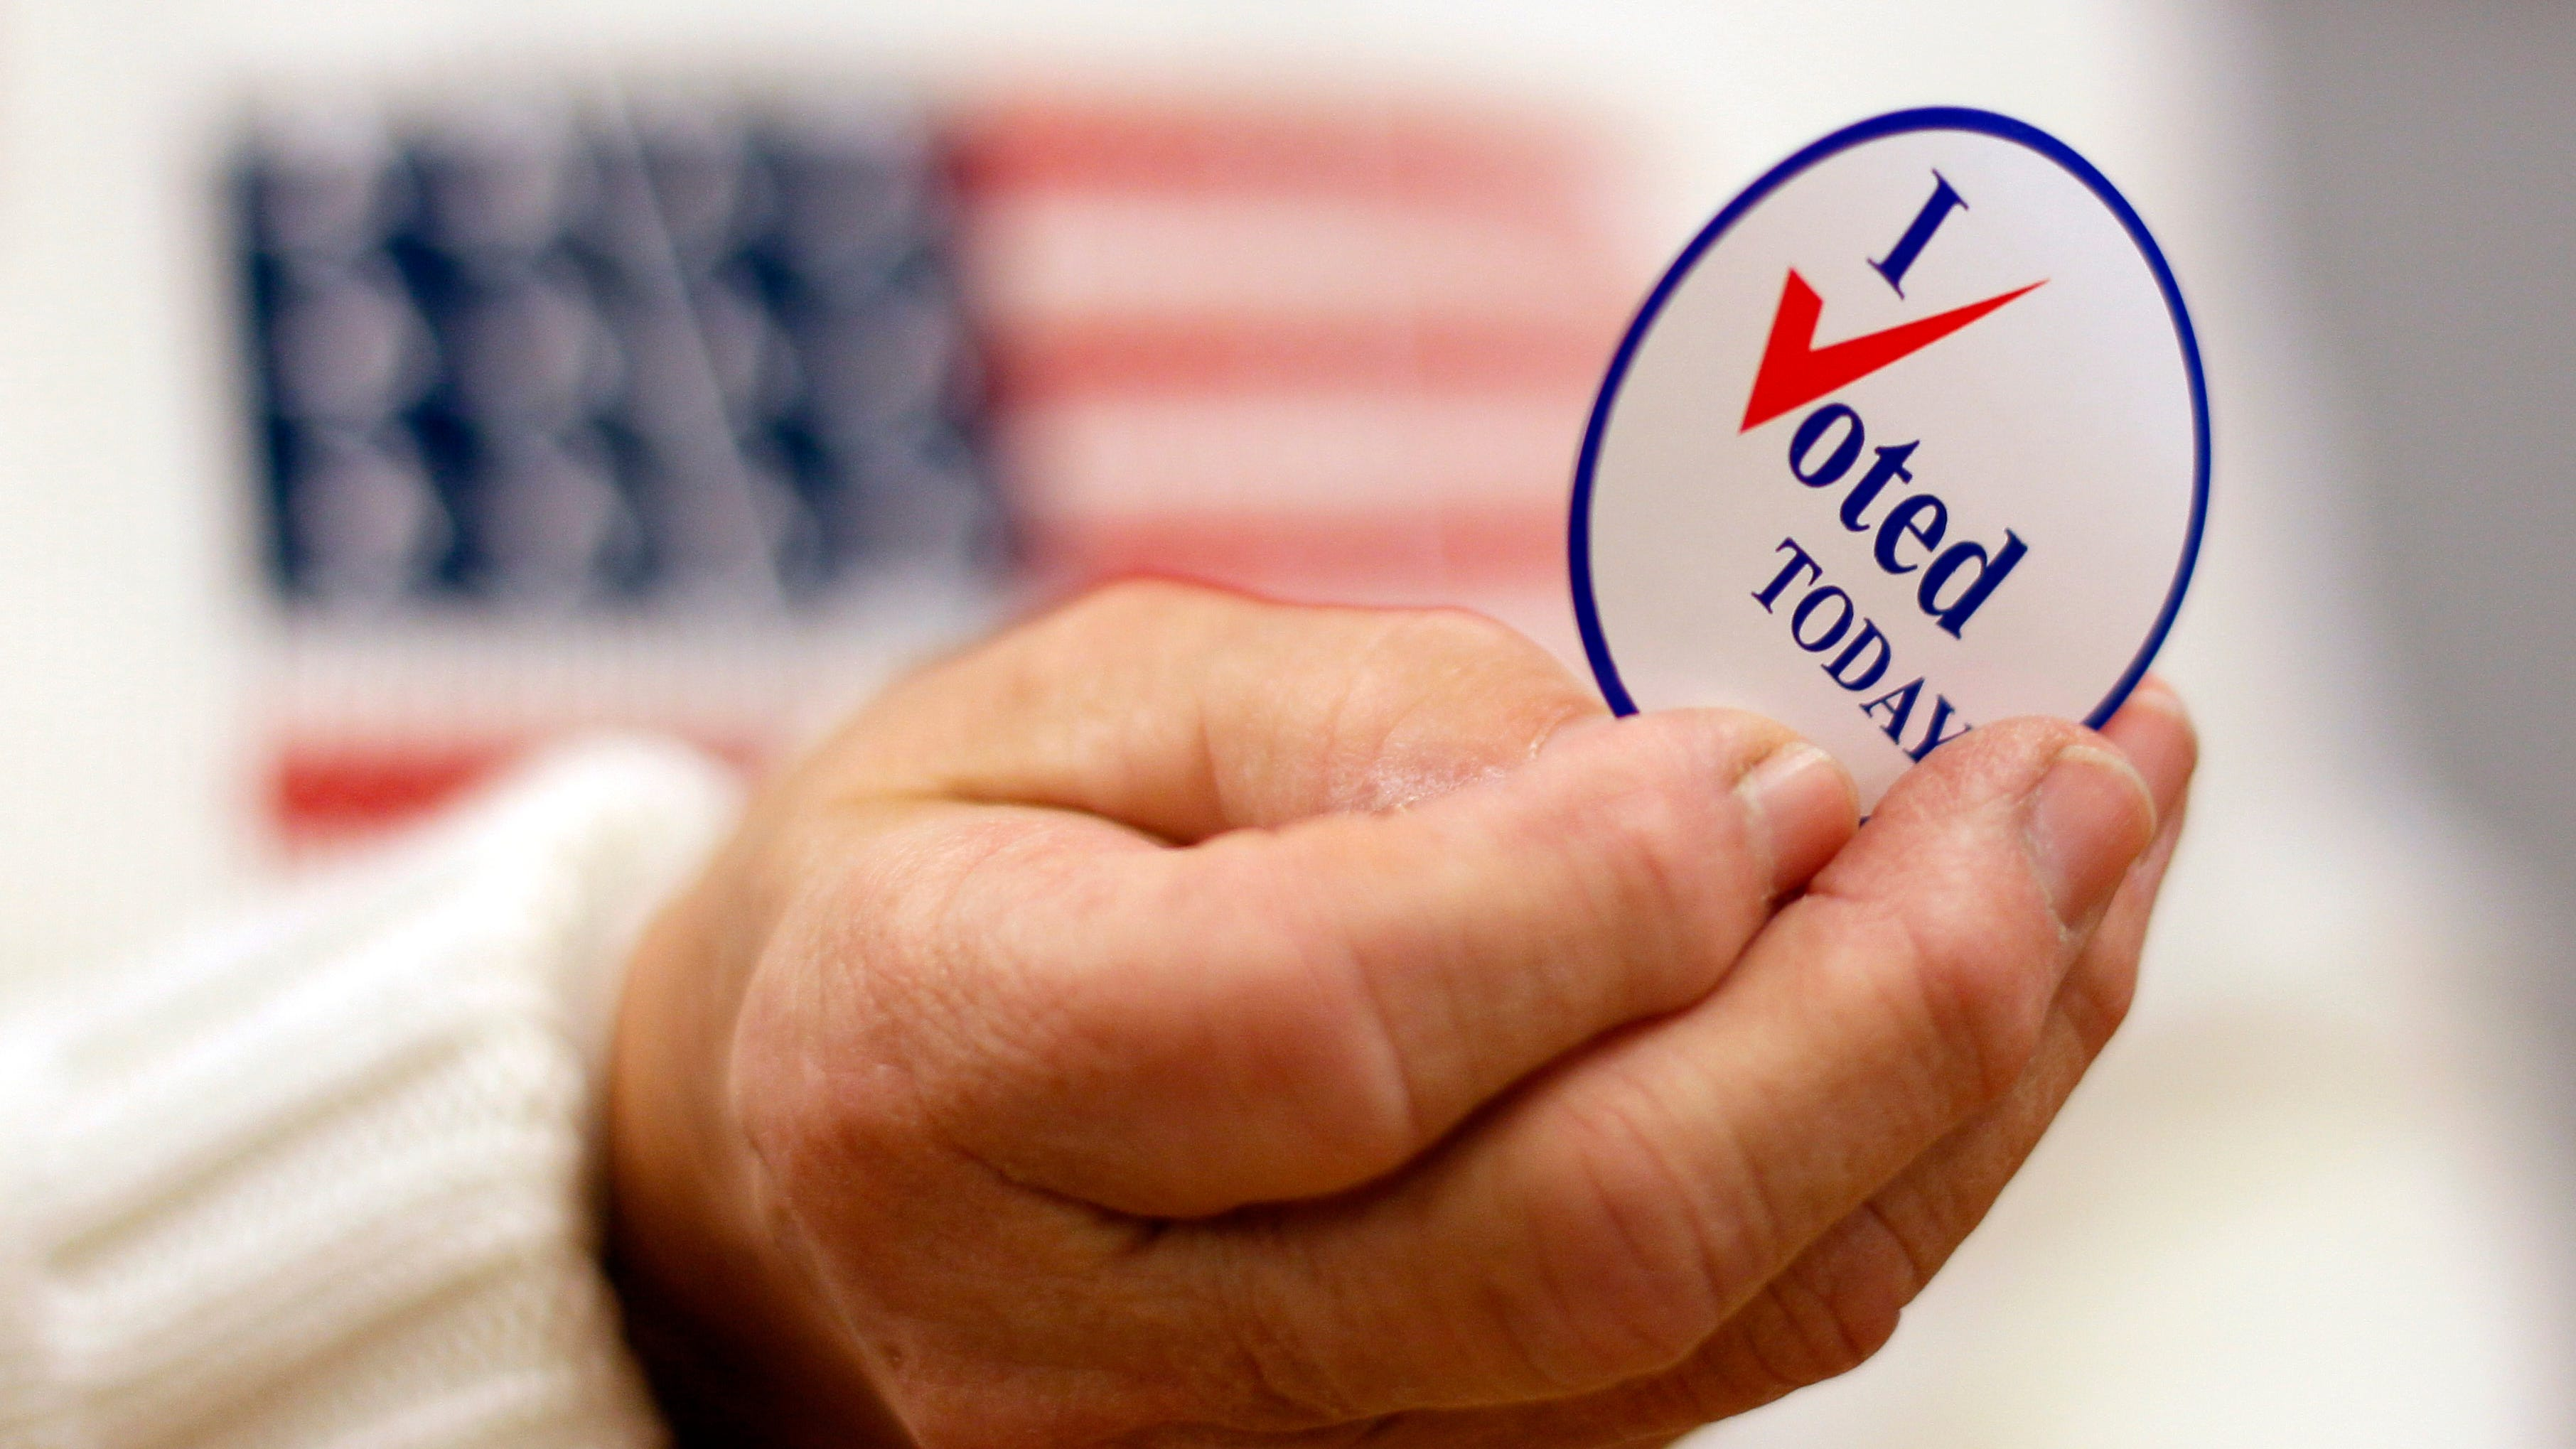 2018 voter guide: Races, candidates, ballot measures for Greenville residents this general election